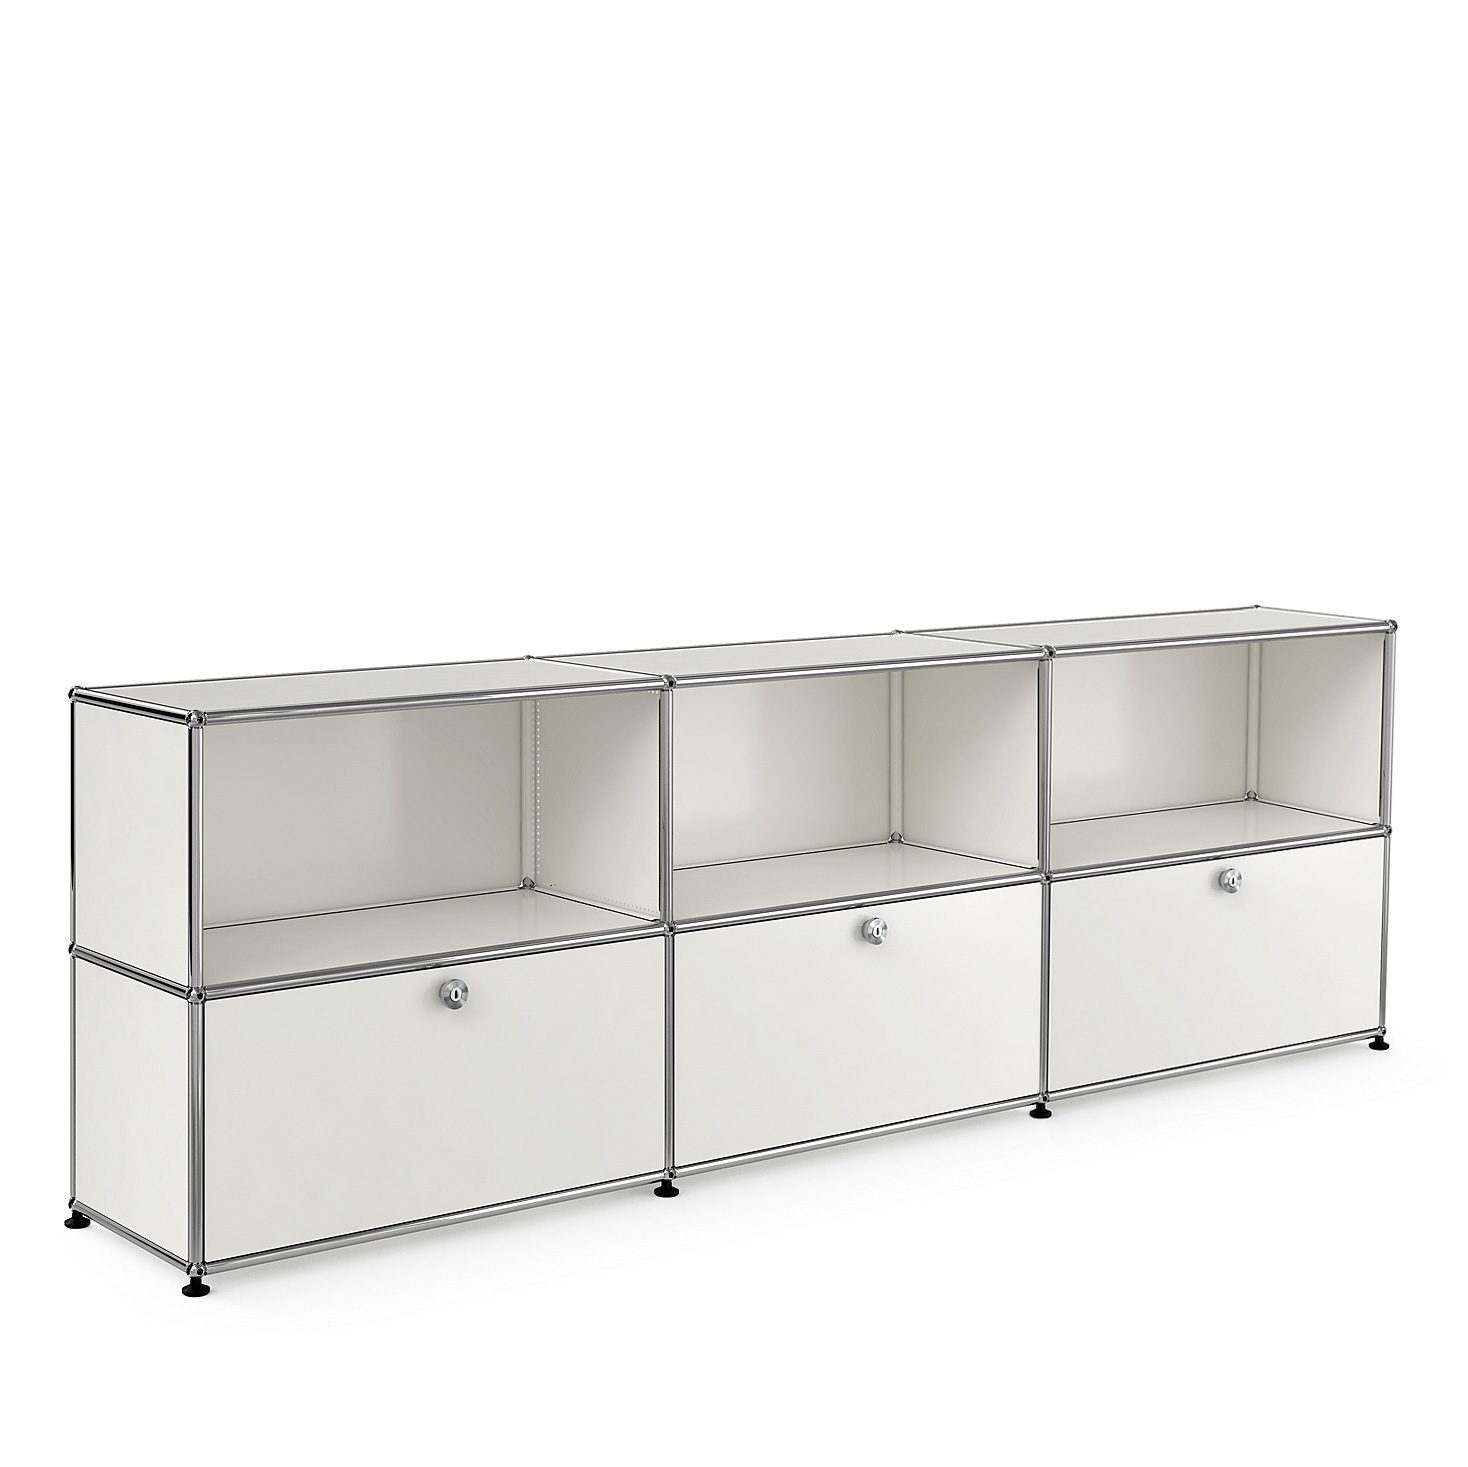 usm haller sideboard ing paul sch rer architekt fritz haller. Black Bedroom Furniture Sets. Home Design Ideas